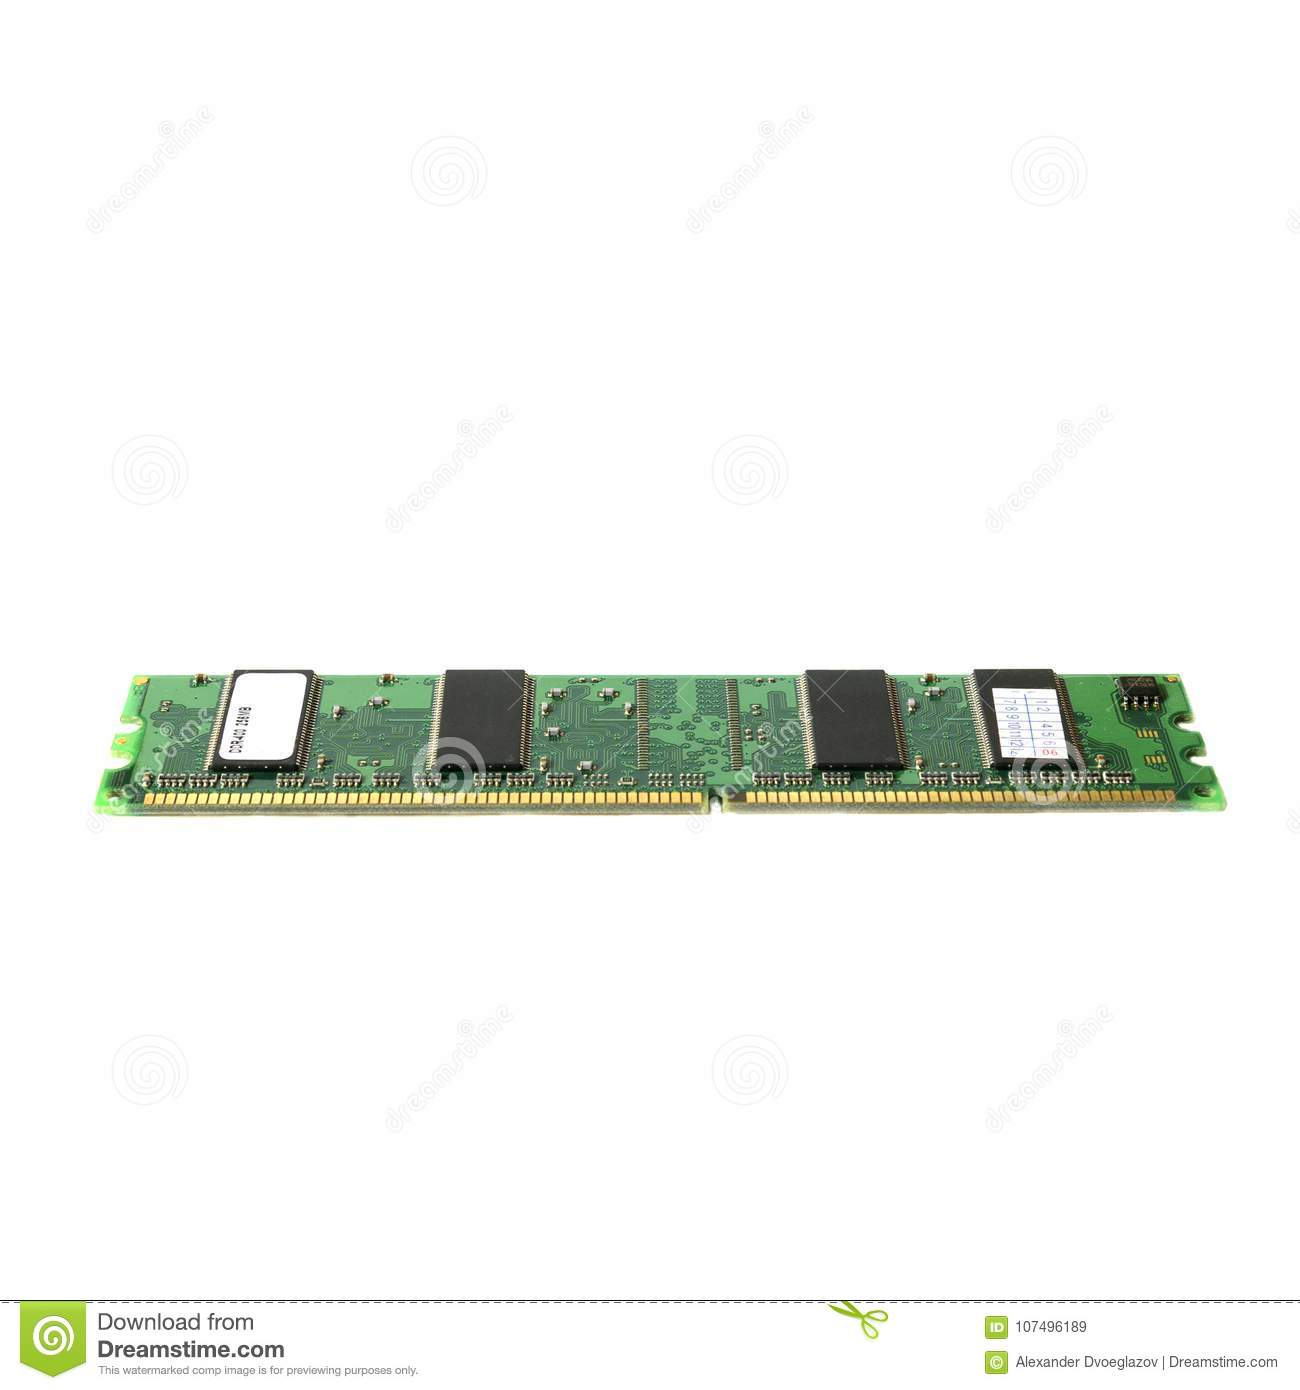 CPU old DDR2 ram. Random access memory for computer.